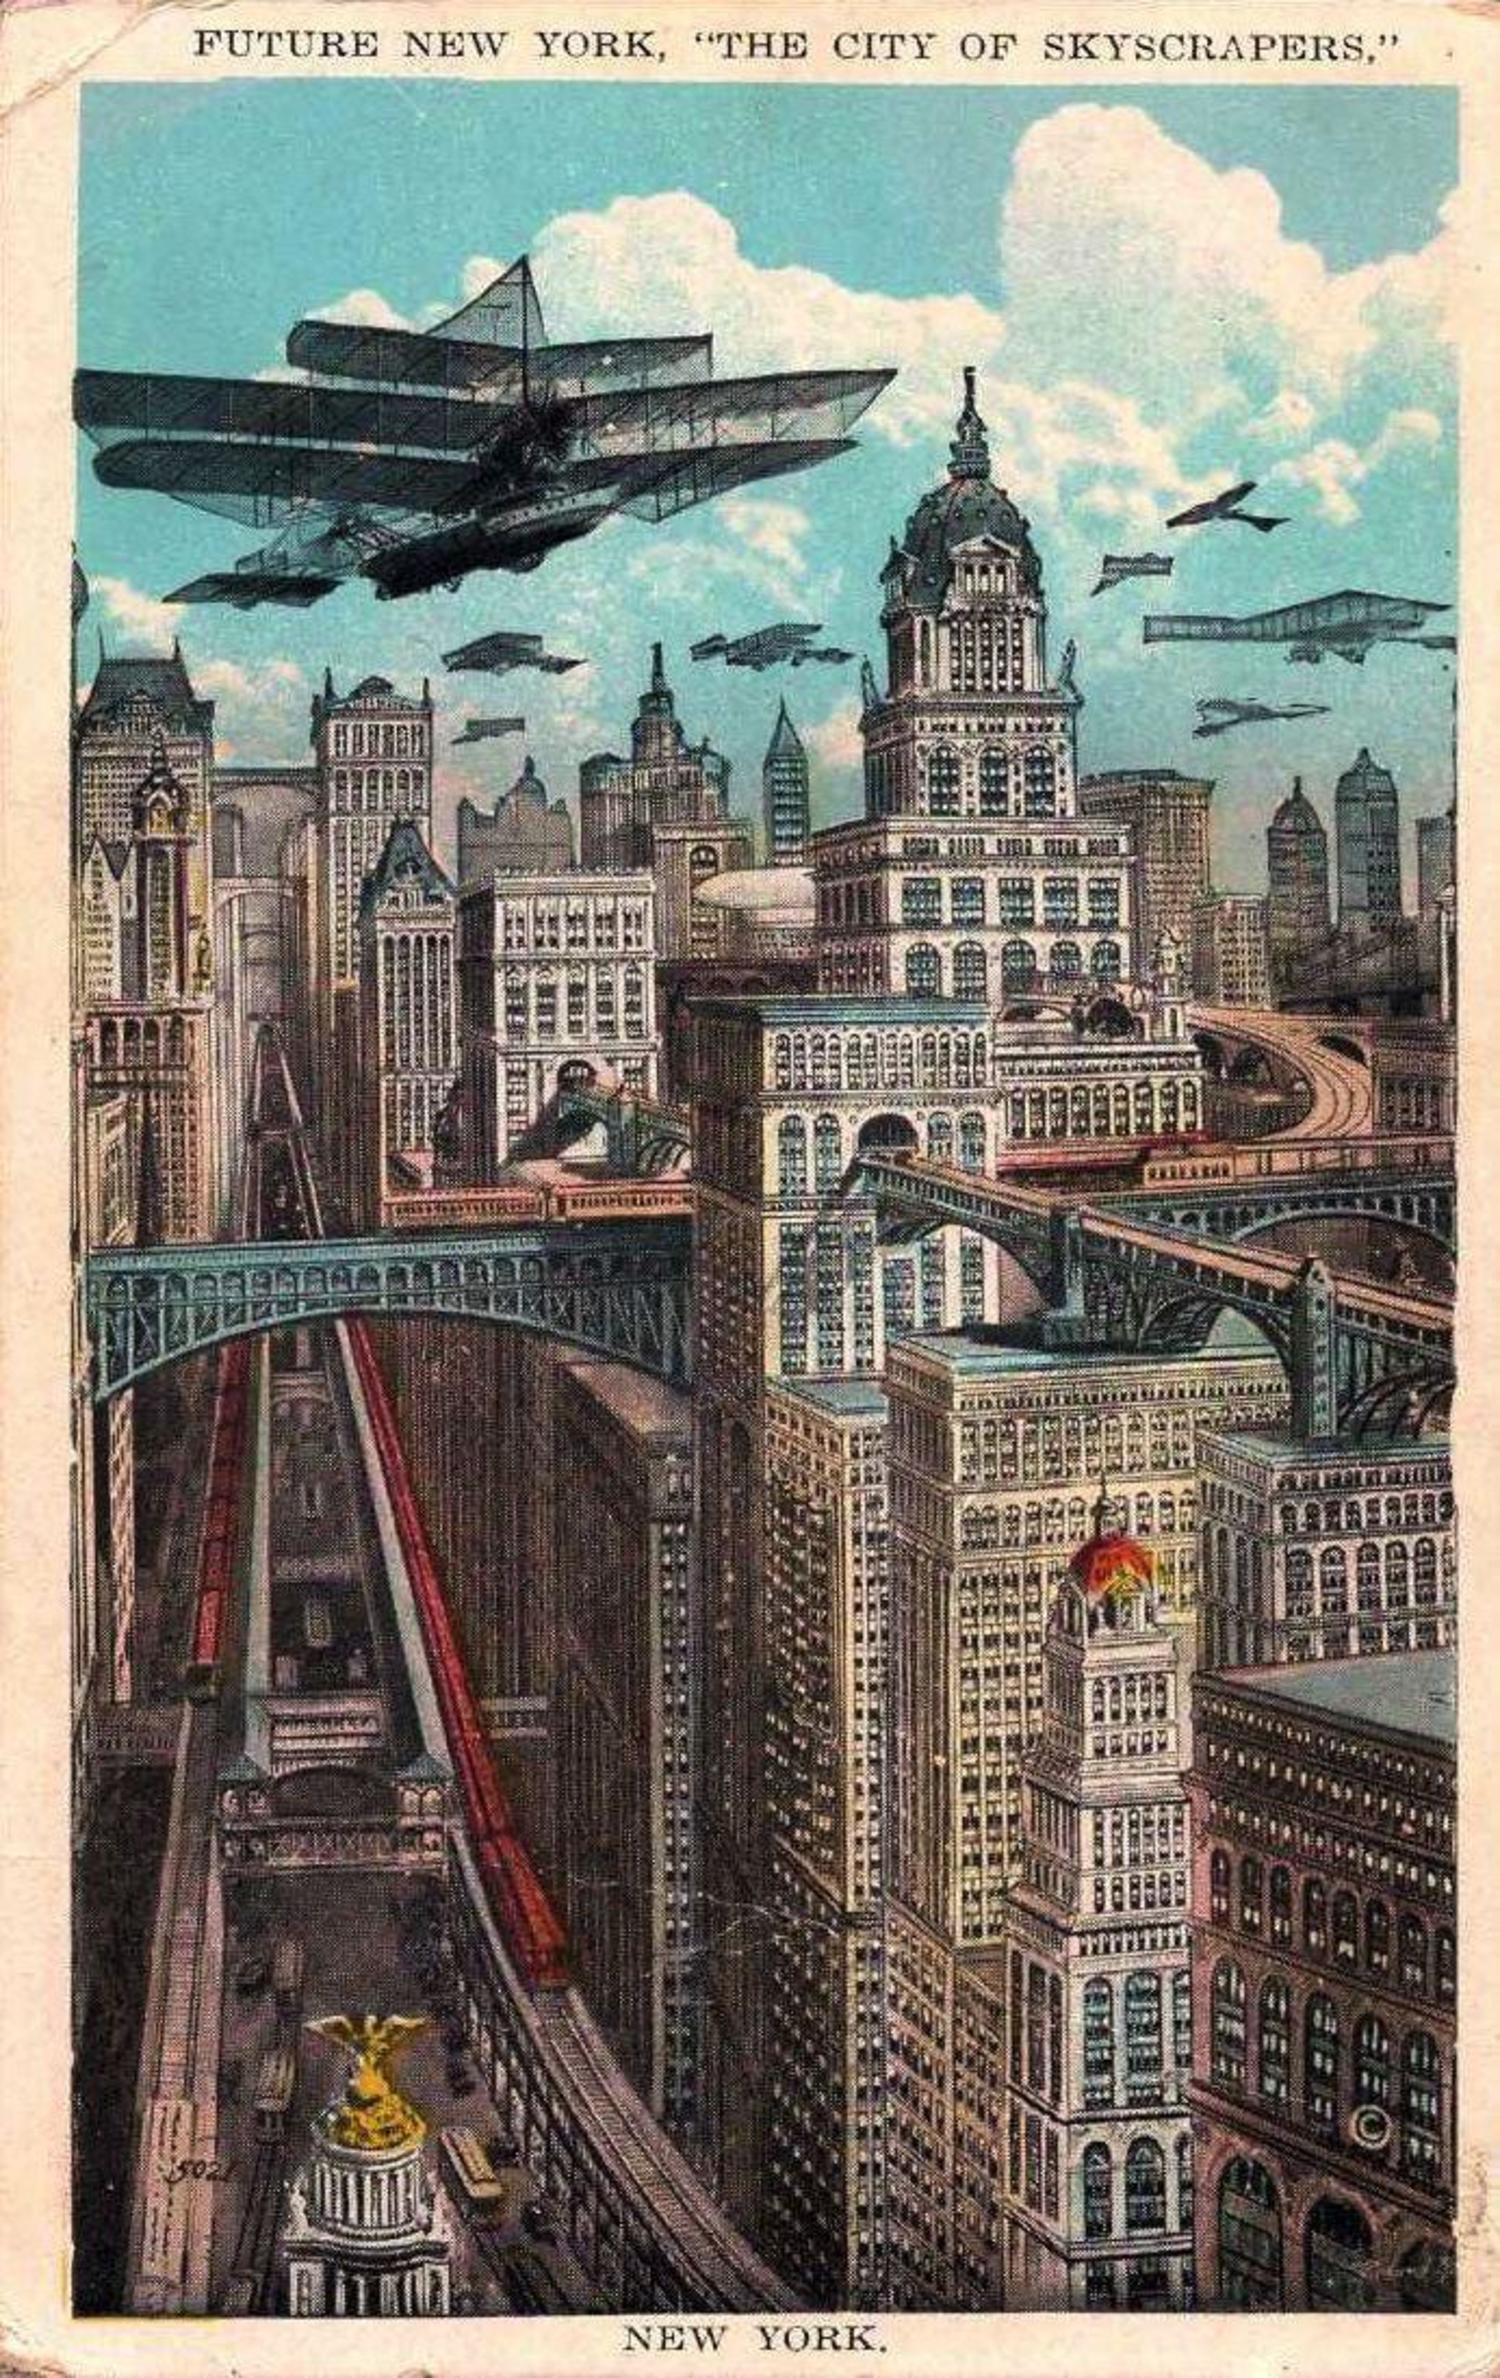 A 1925 prediction of how a future New York could look